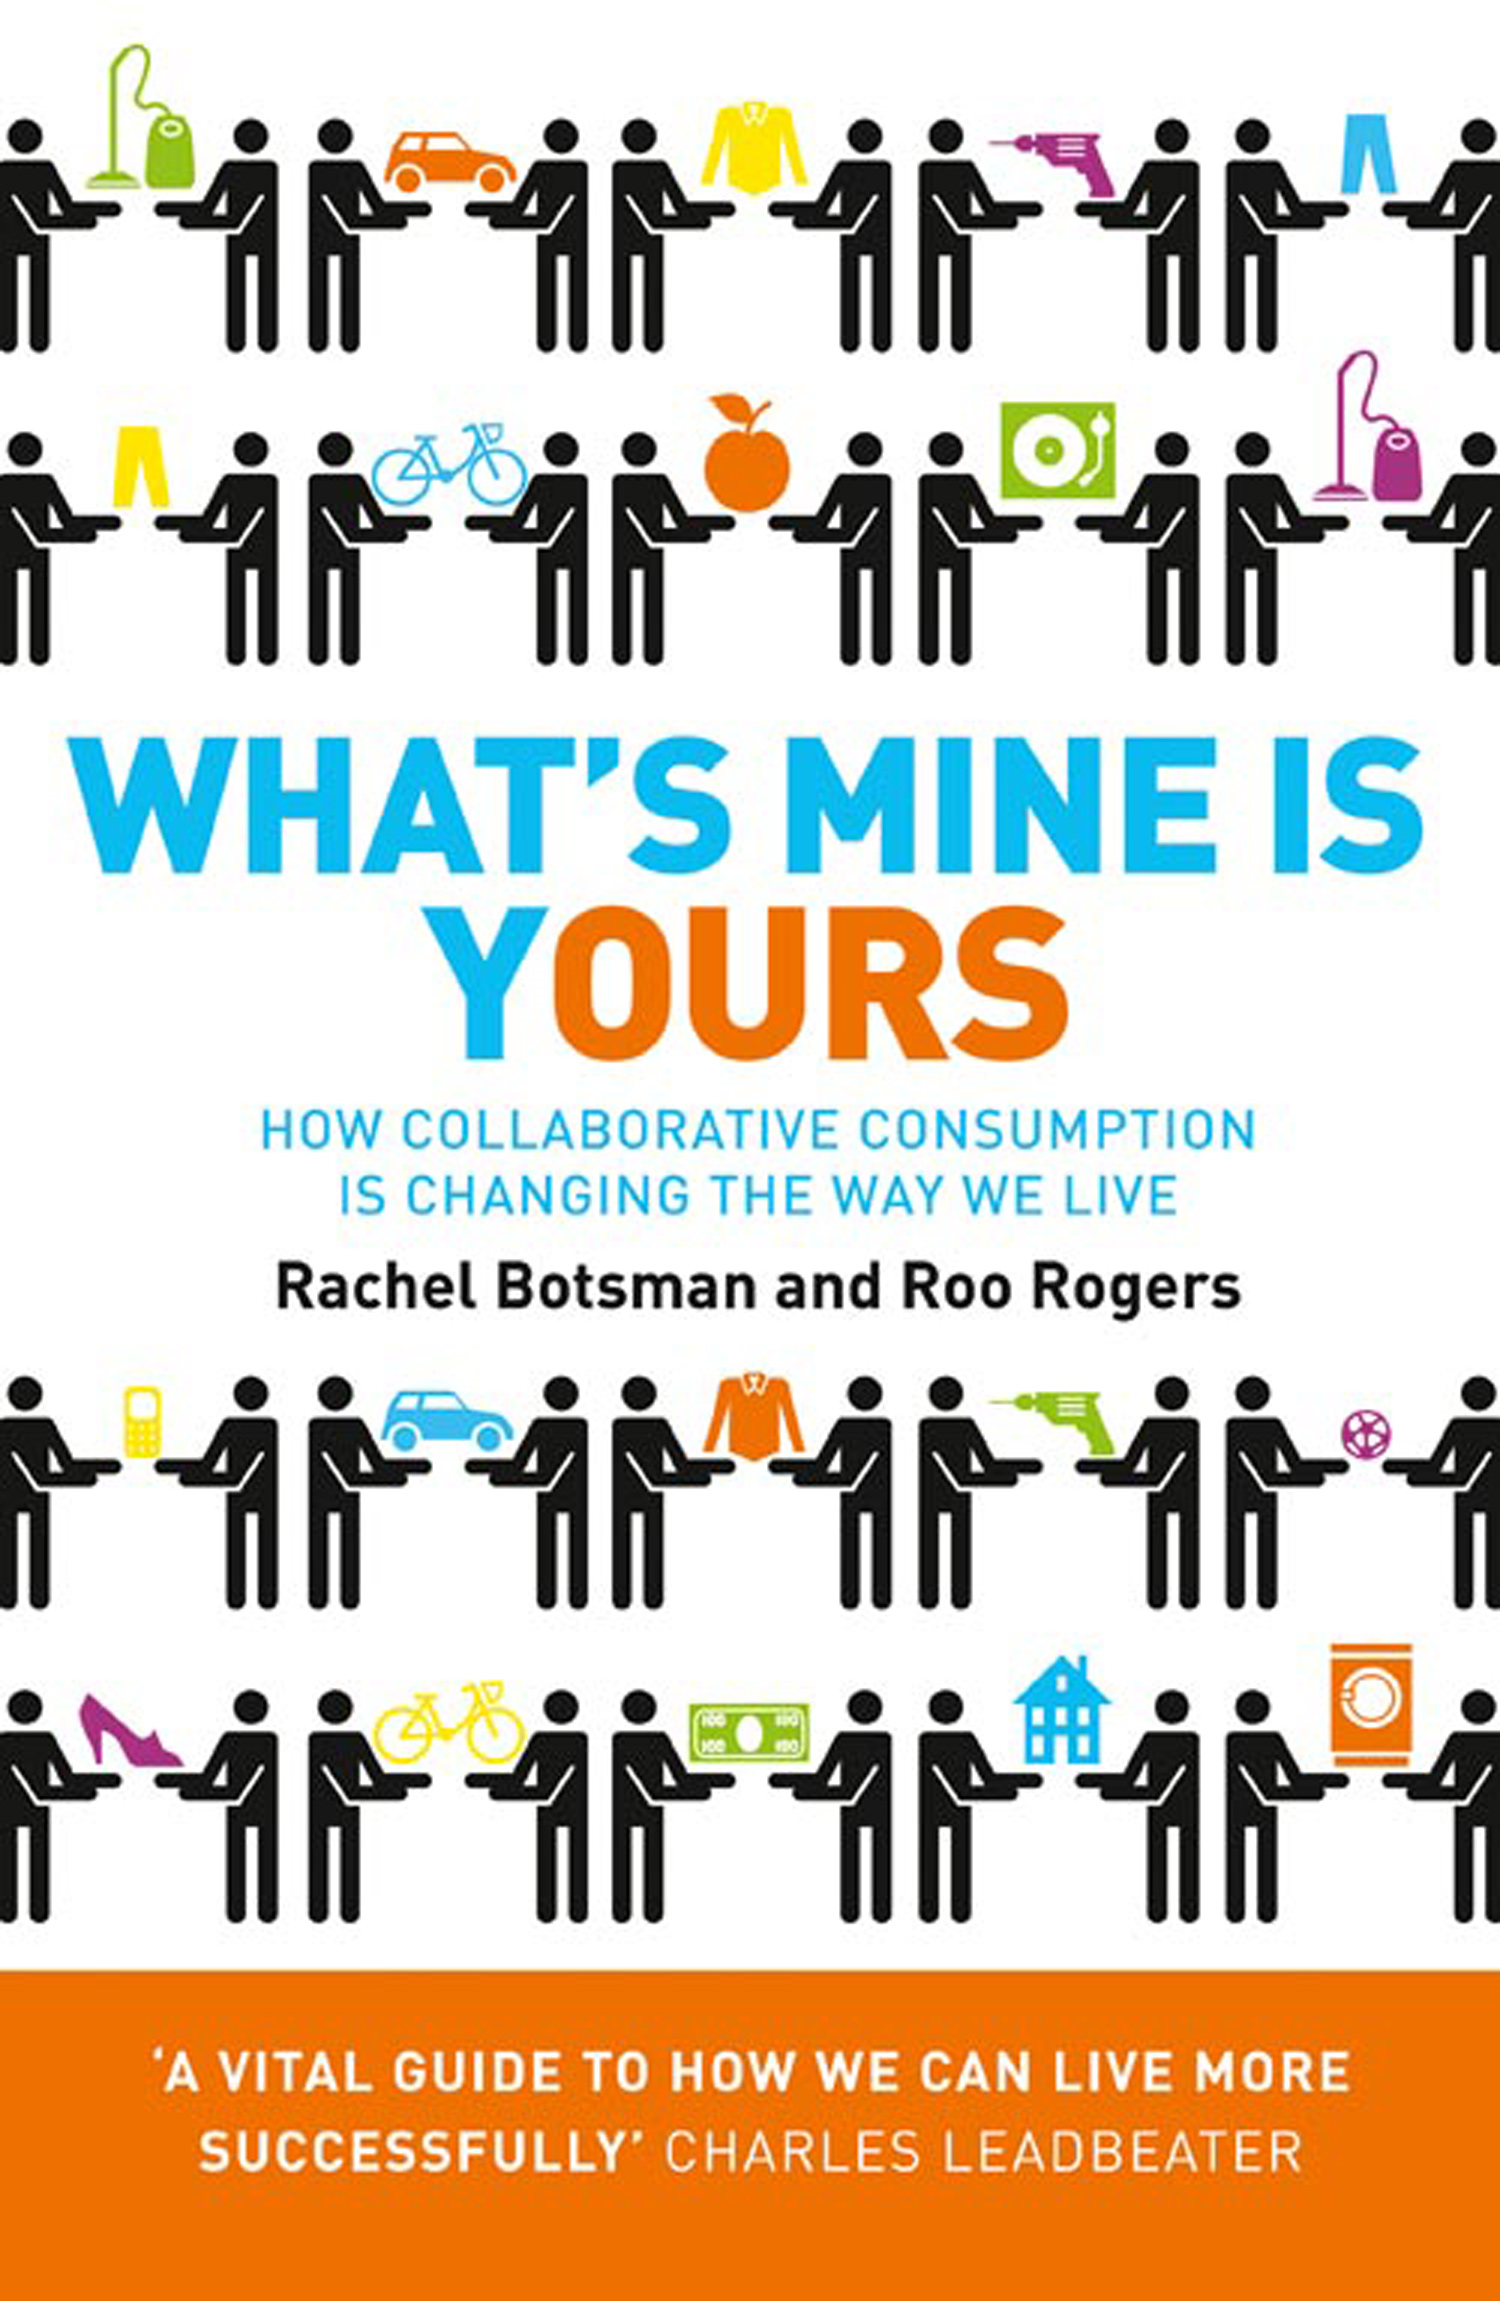 What?s Mine Is Yours: How Collaborative Consumption is Changing the Way We Live